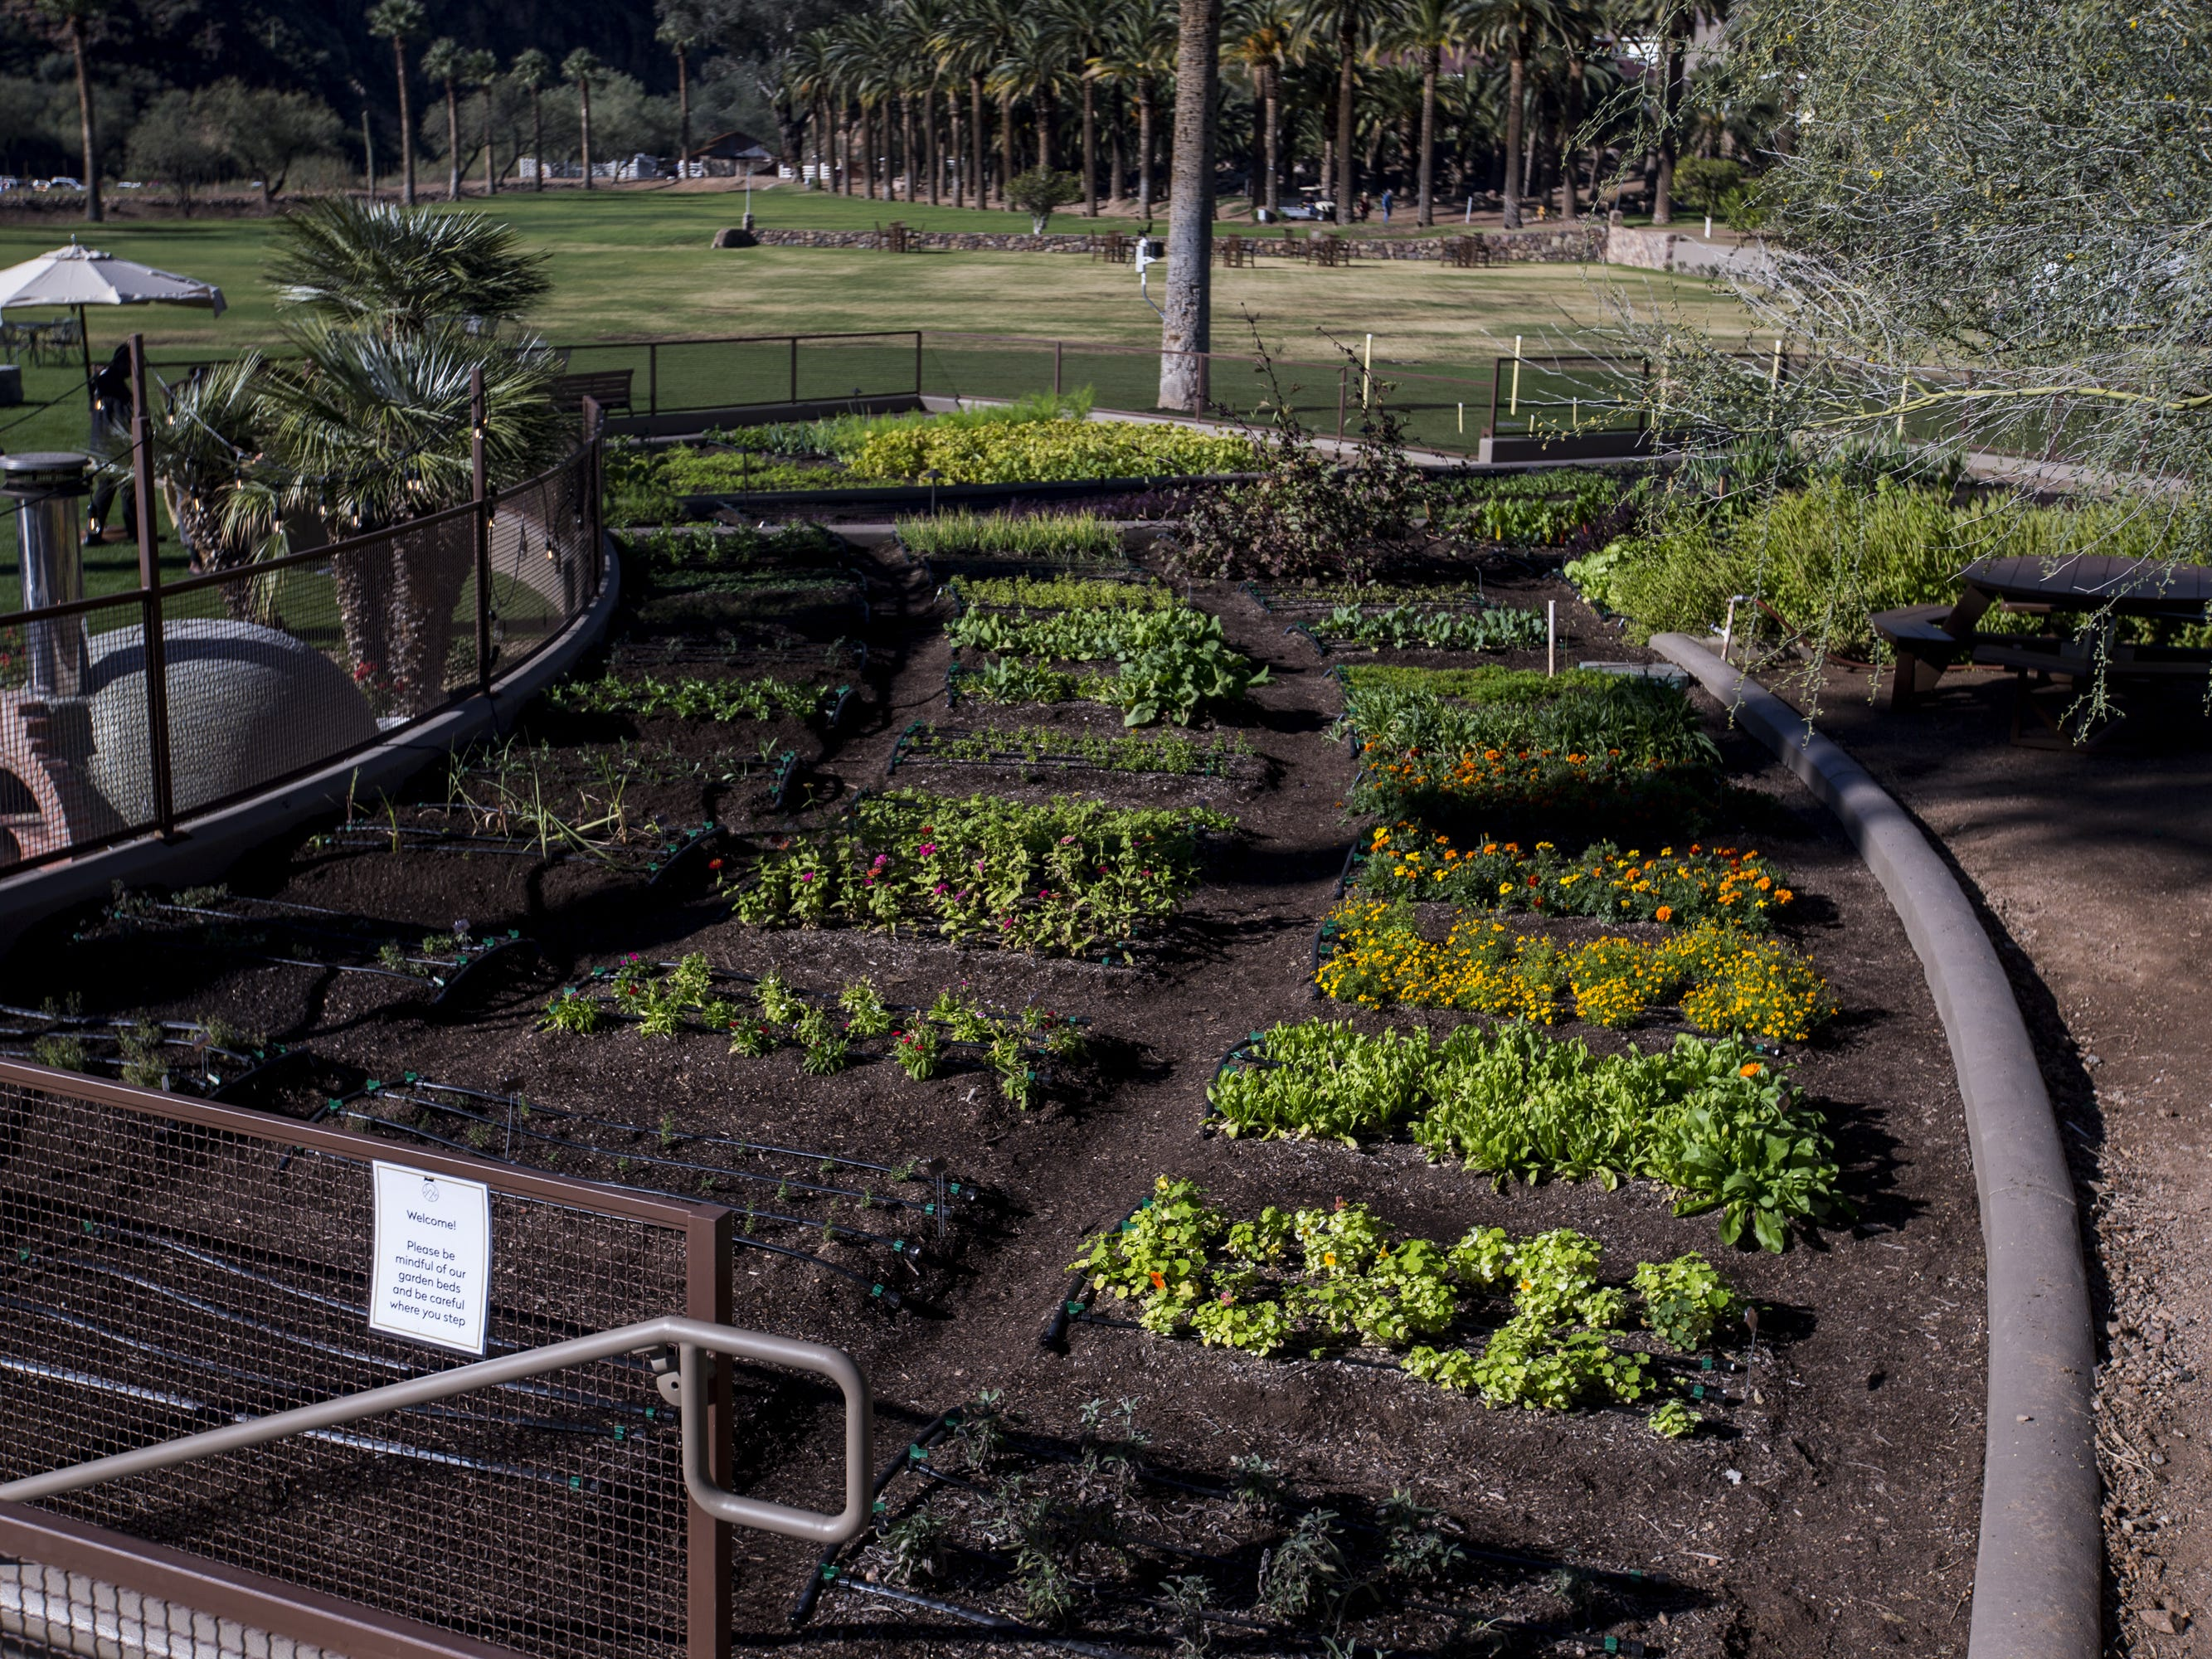 A garden is pictured at the newly renovated Castle Hot Springs resort is pictured on Saturday, Dec. 8, 2018, in Morristown, Ariz. It has been 50 years since the resort has hosted any guests.